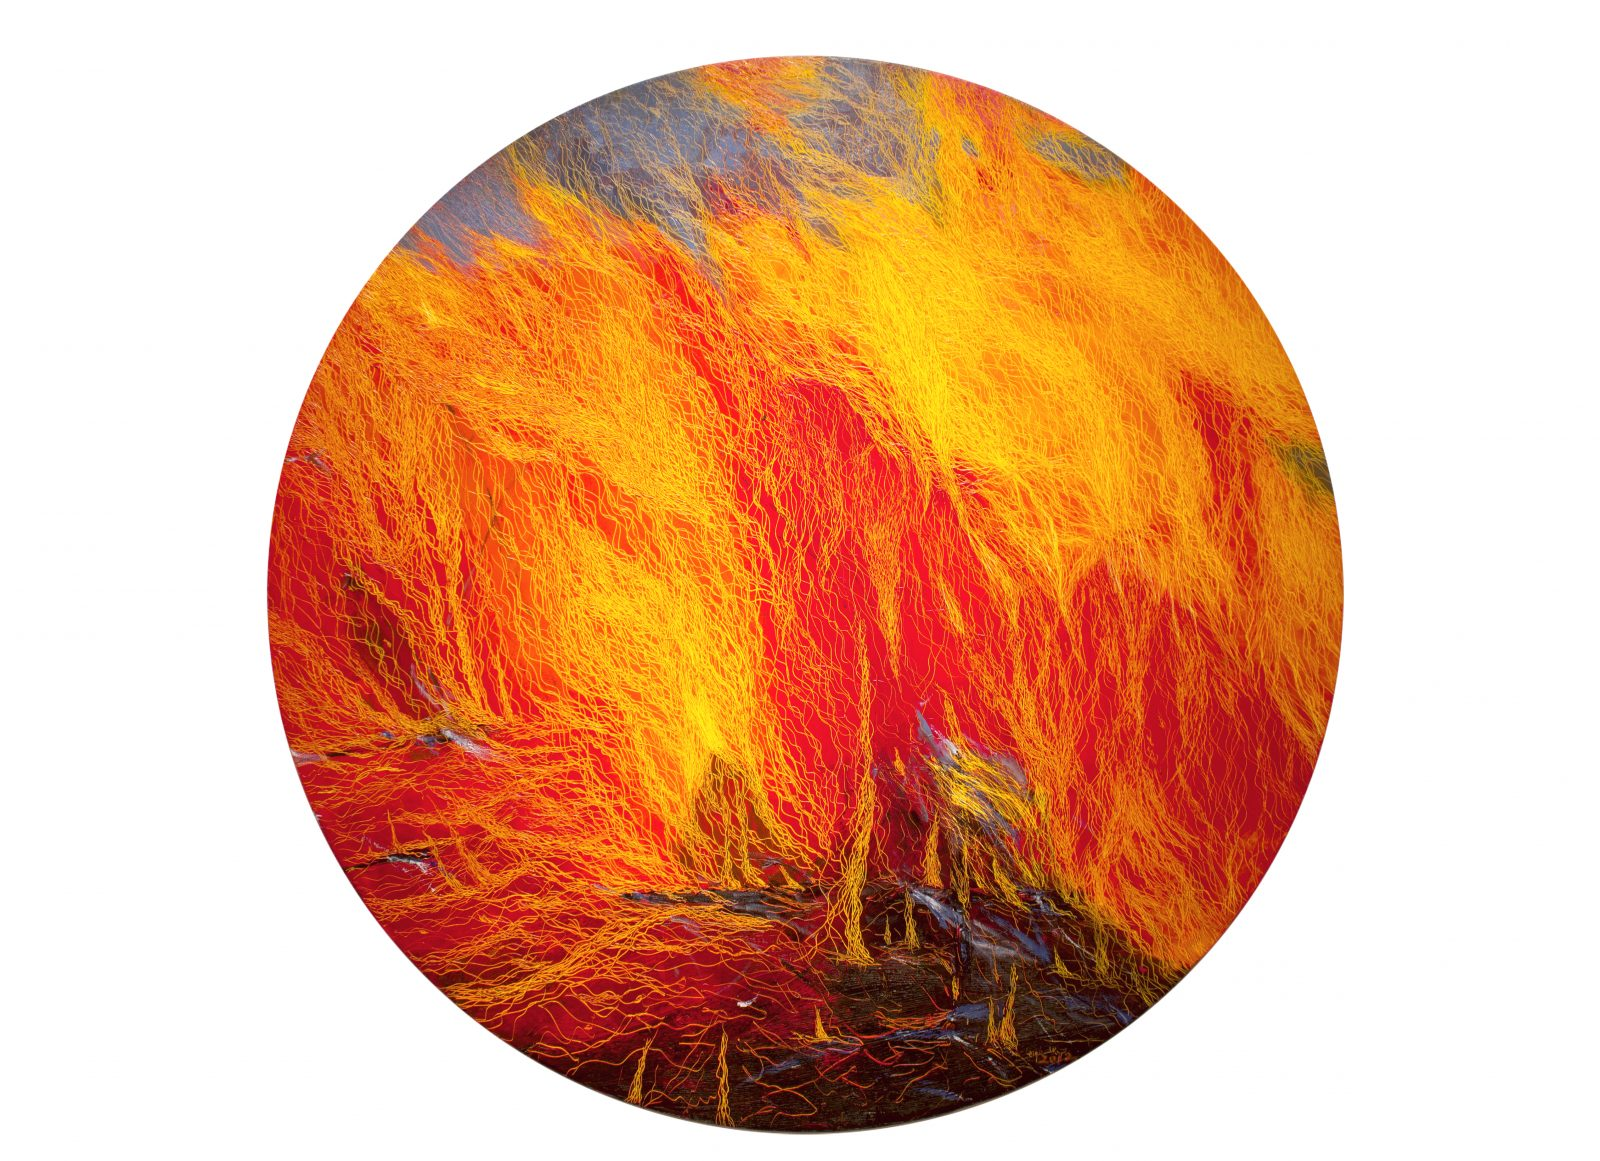 Fire X, 60 diameter, oil on canvas, 2012